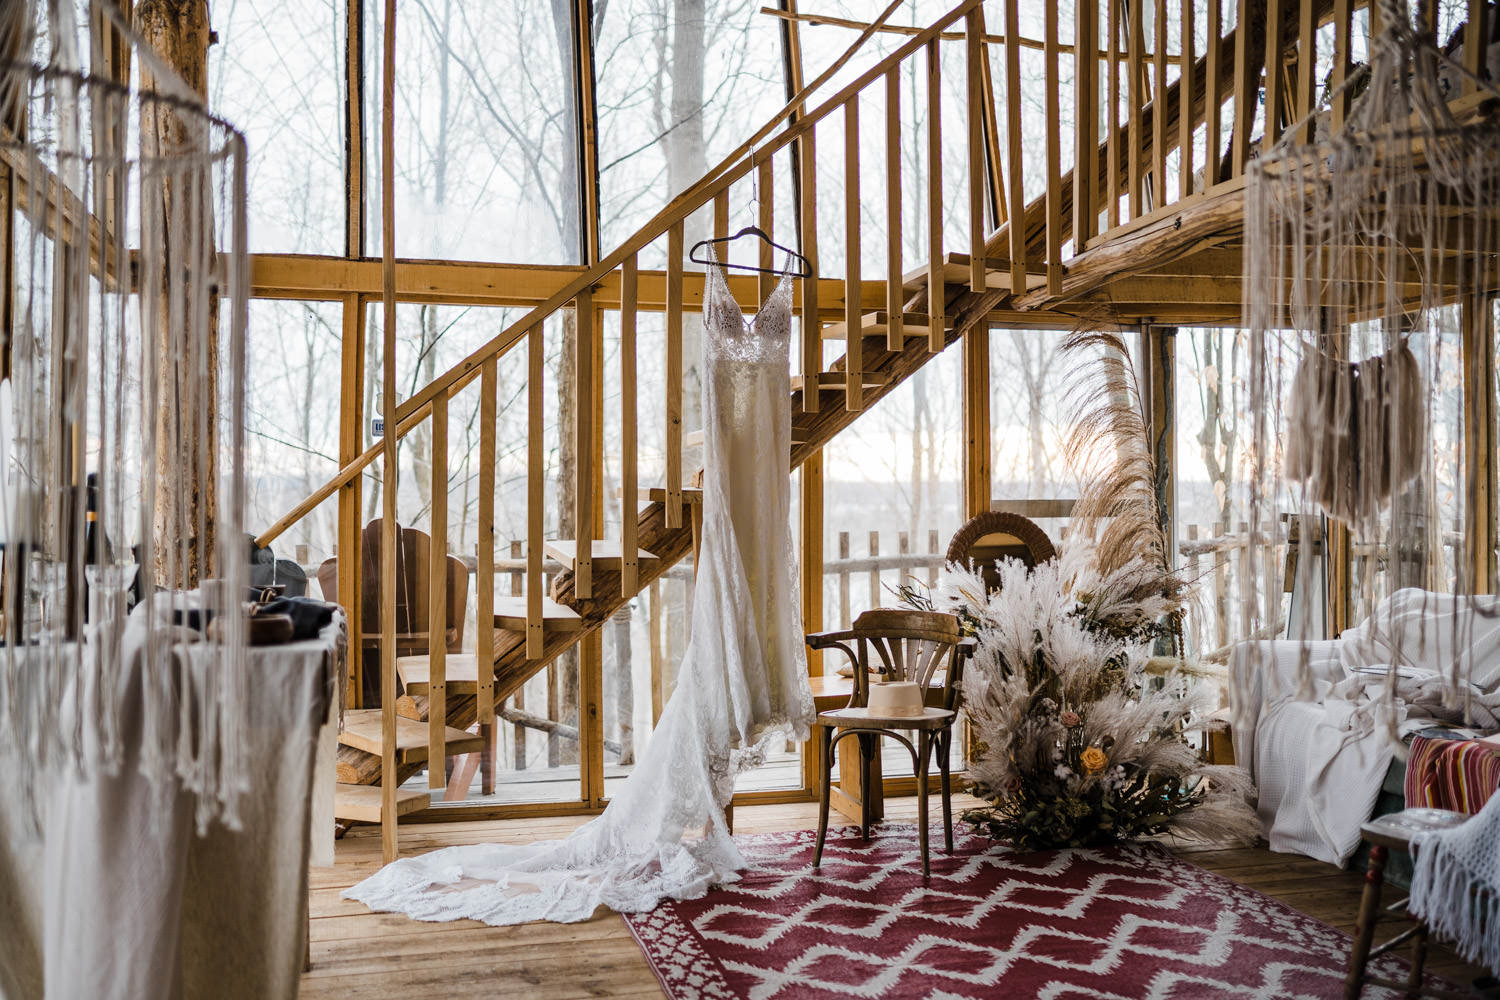 bridal elopement gown hanging in cabin